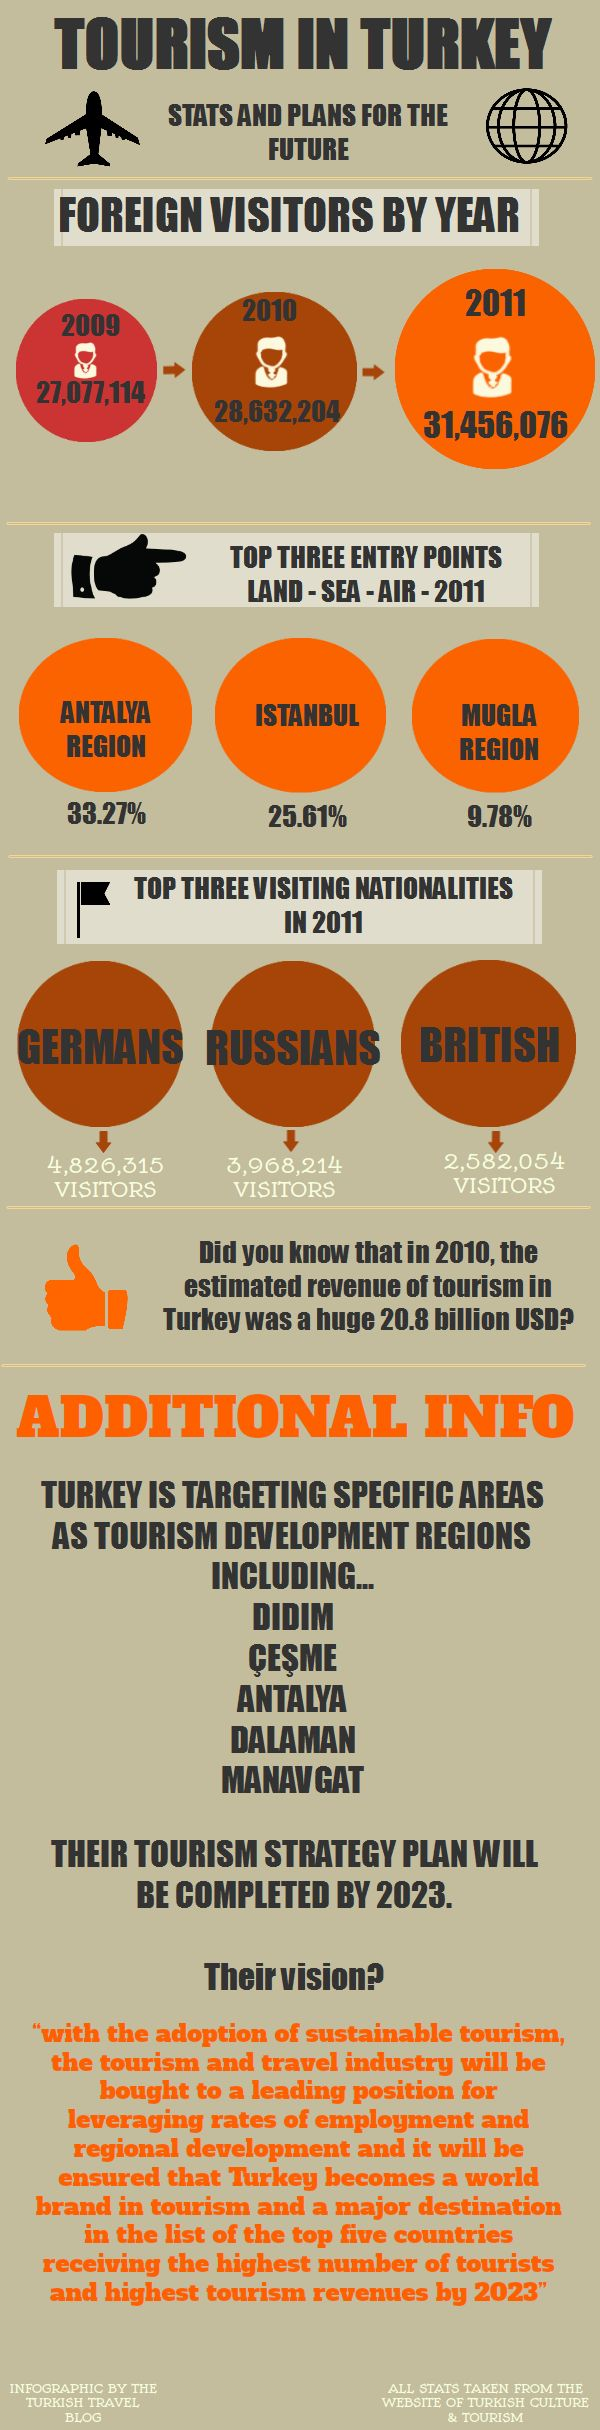 Tourism In Turkey – Stats and Plans For The Future